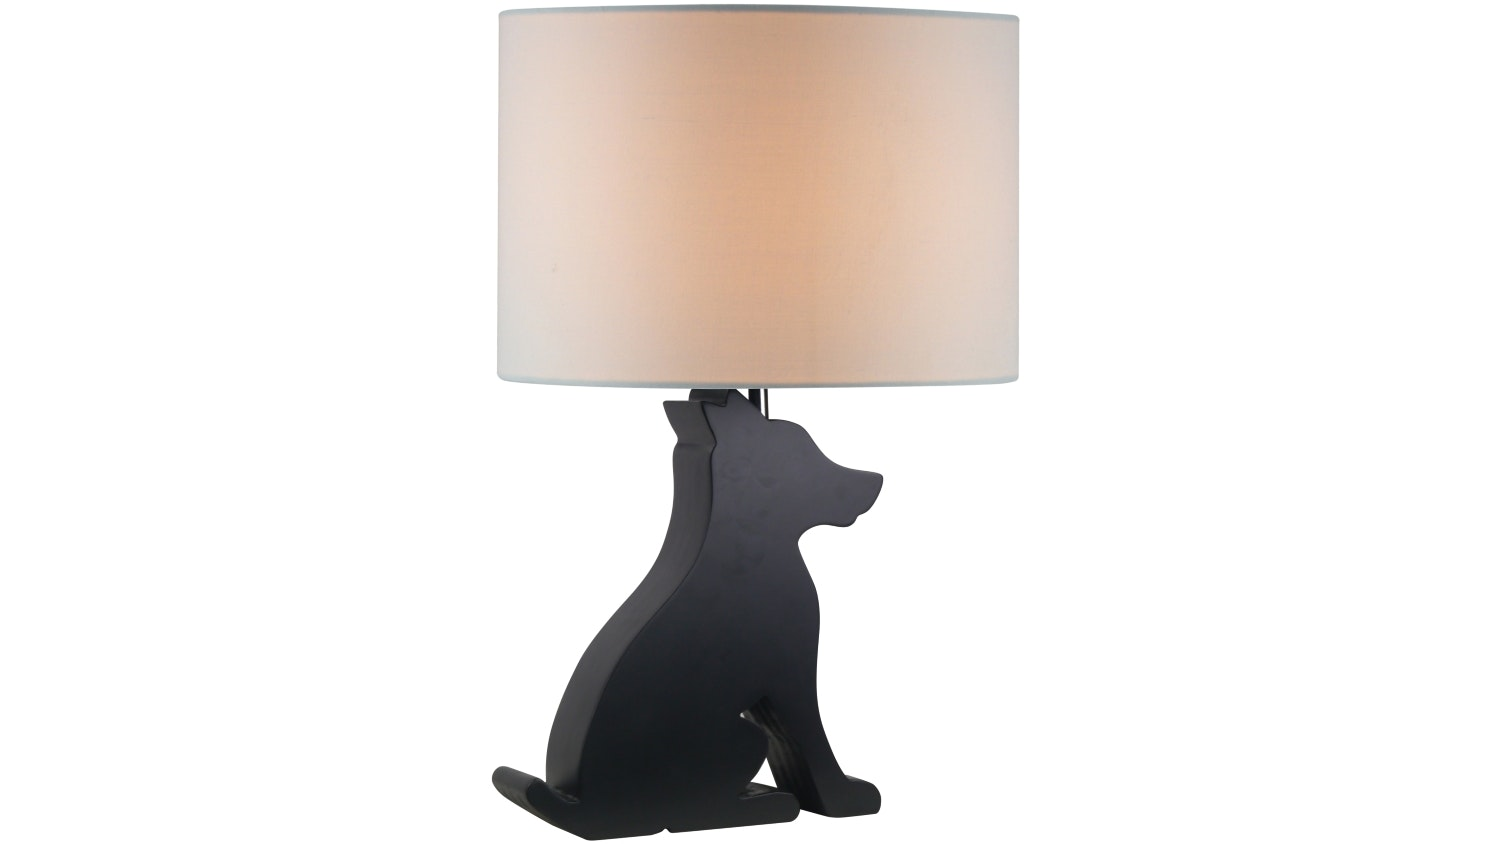 Coco Puppy Table Lamp - Black